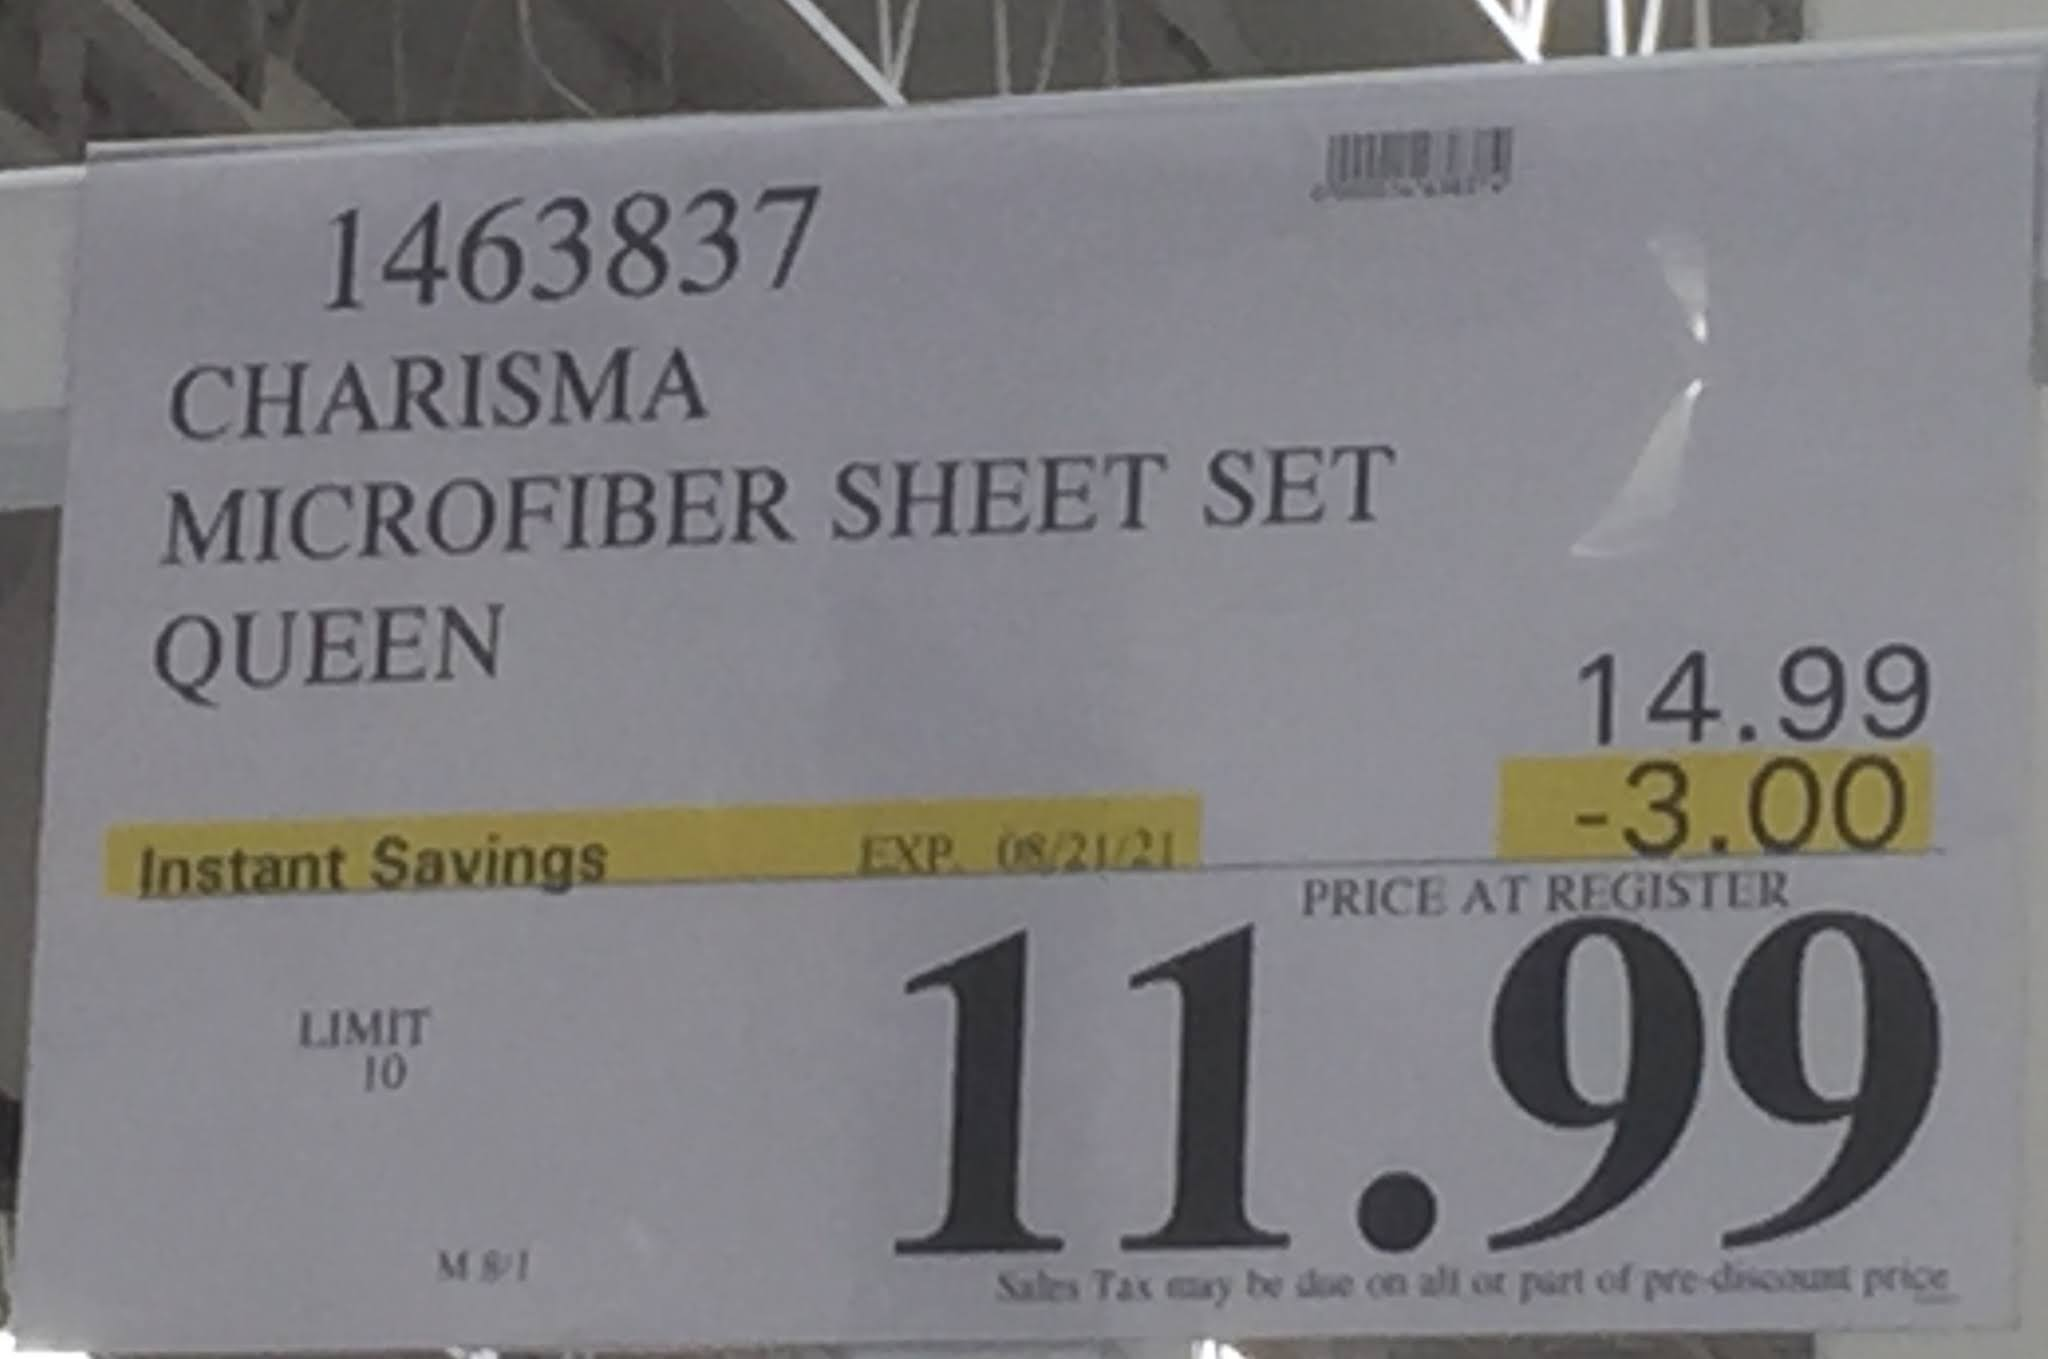 Deal for the queen size Charisma 6-piece Microfiber Sheet Set at Costco